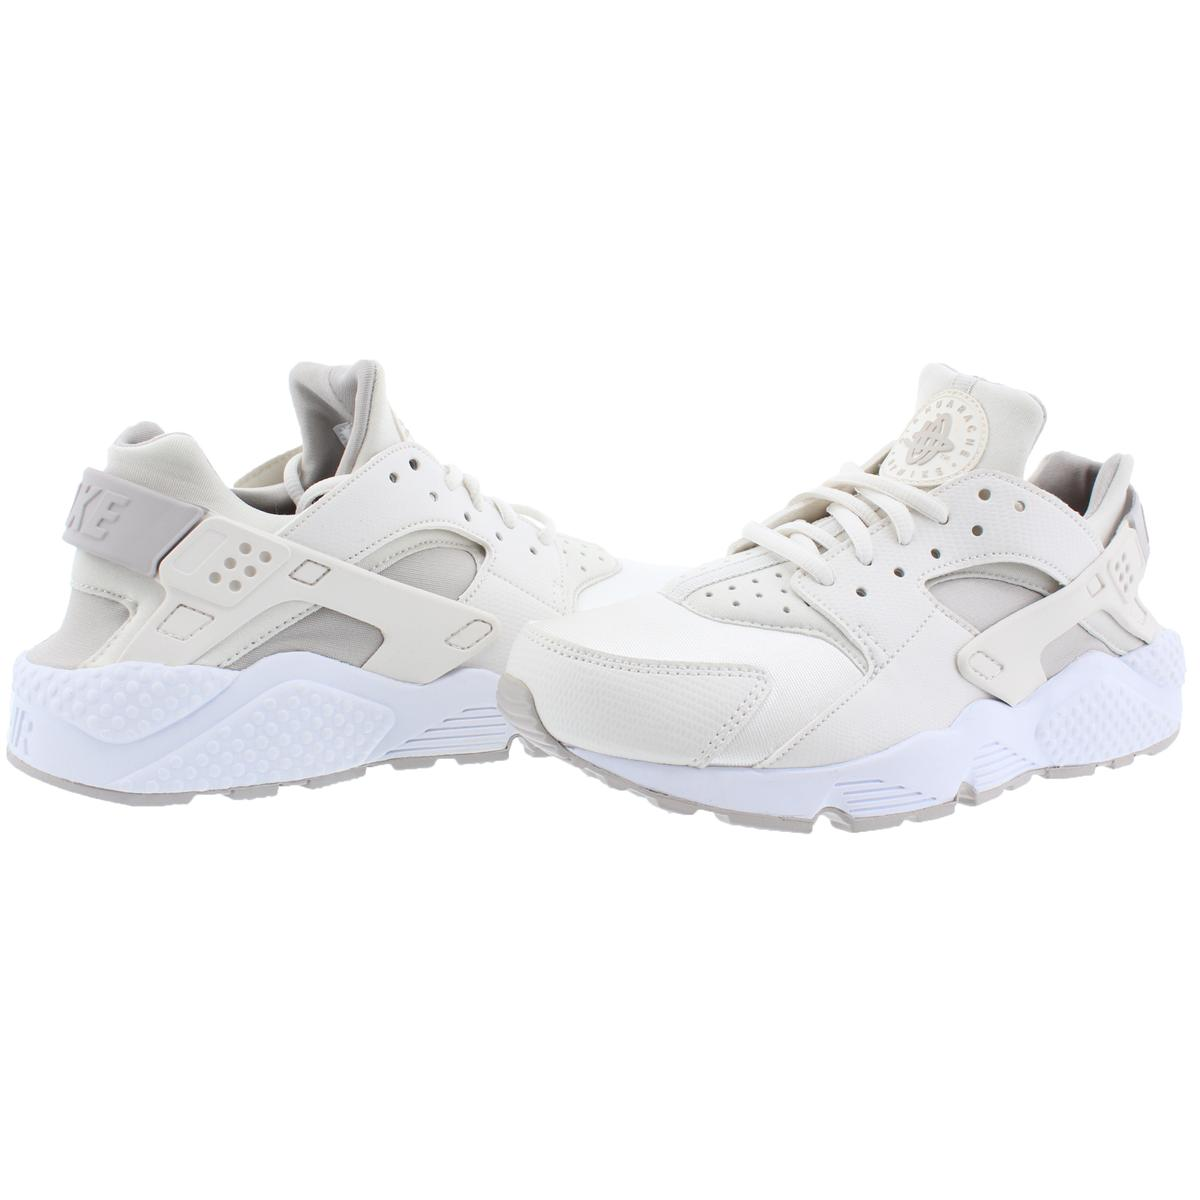 ca86d9dcc6 Nike Womens Air Huarache Run Training Running Shoes Sneakers BHFO ...